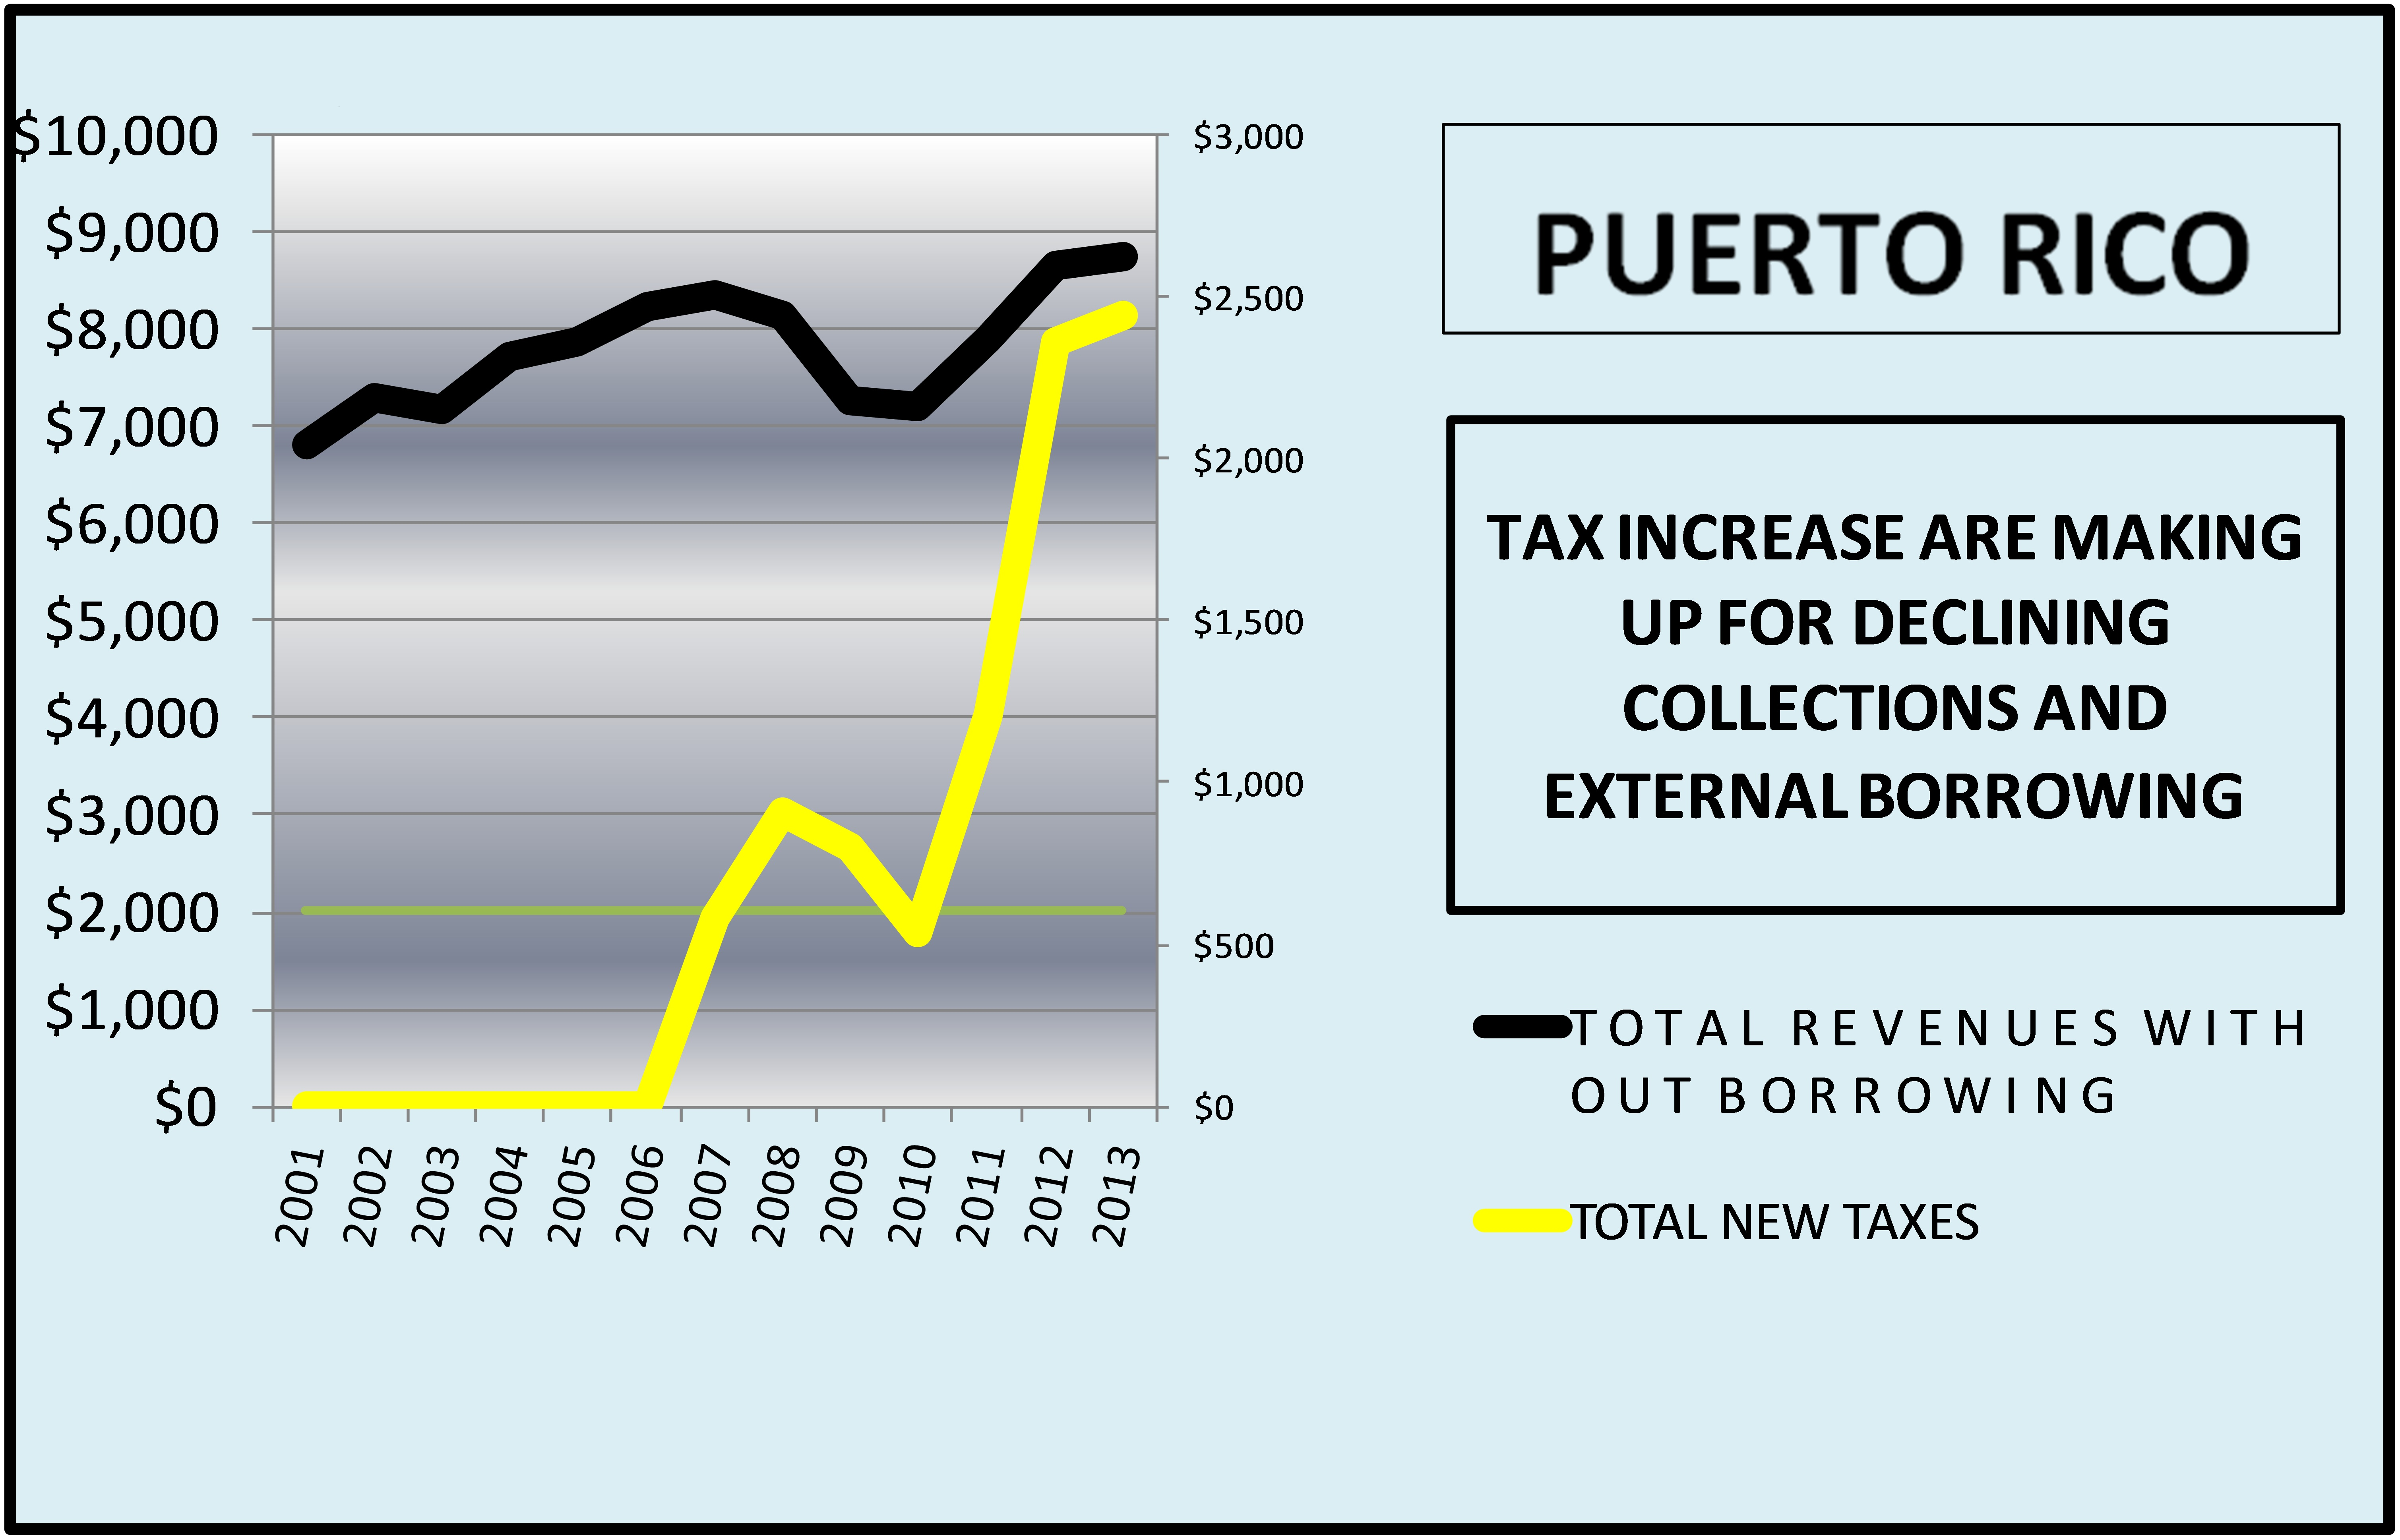 Puerto rico tax experts